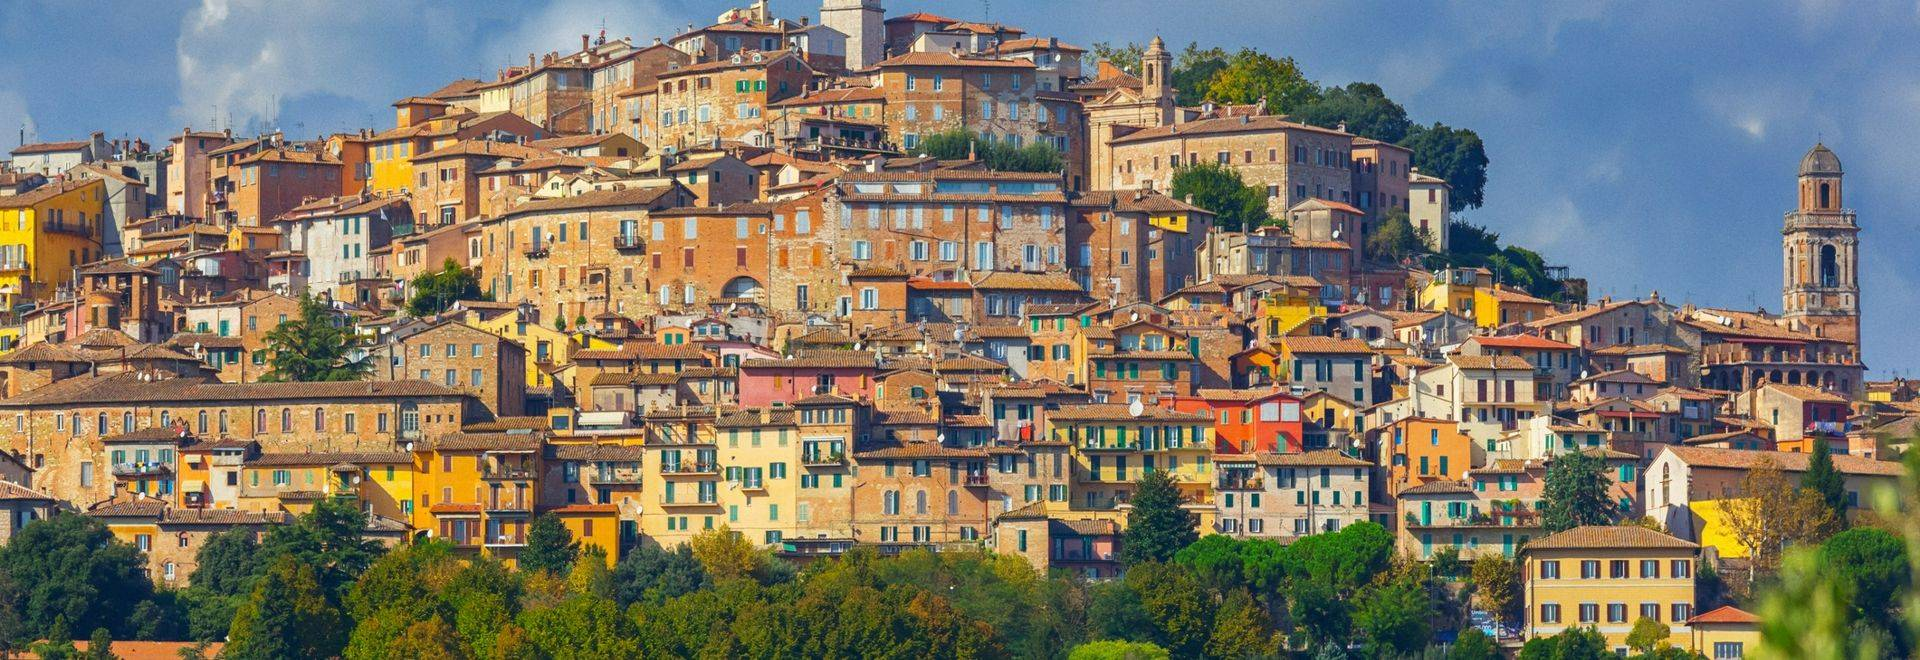 GettyImages-845494602 Perugia in Umbria, Italy.jpg